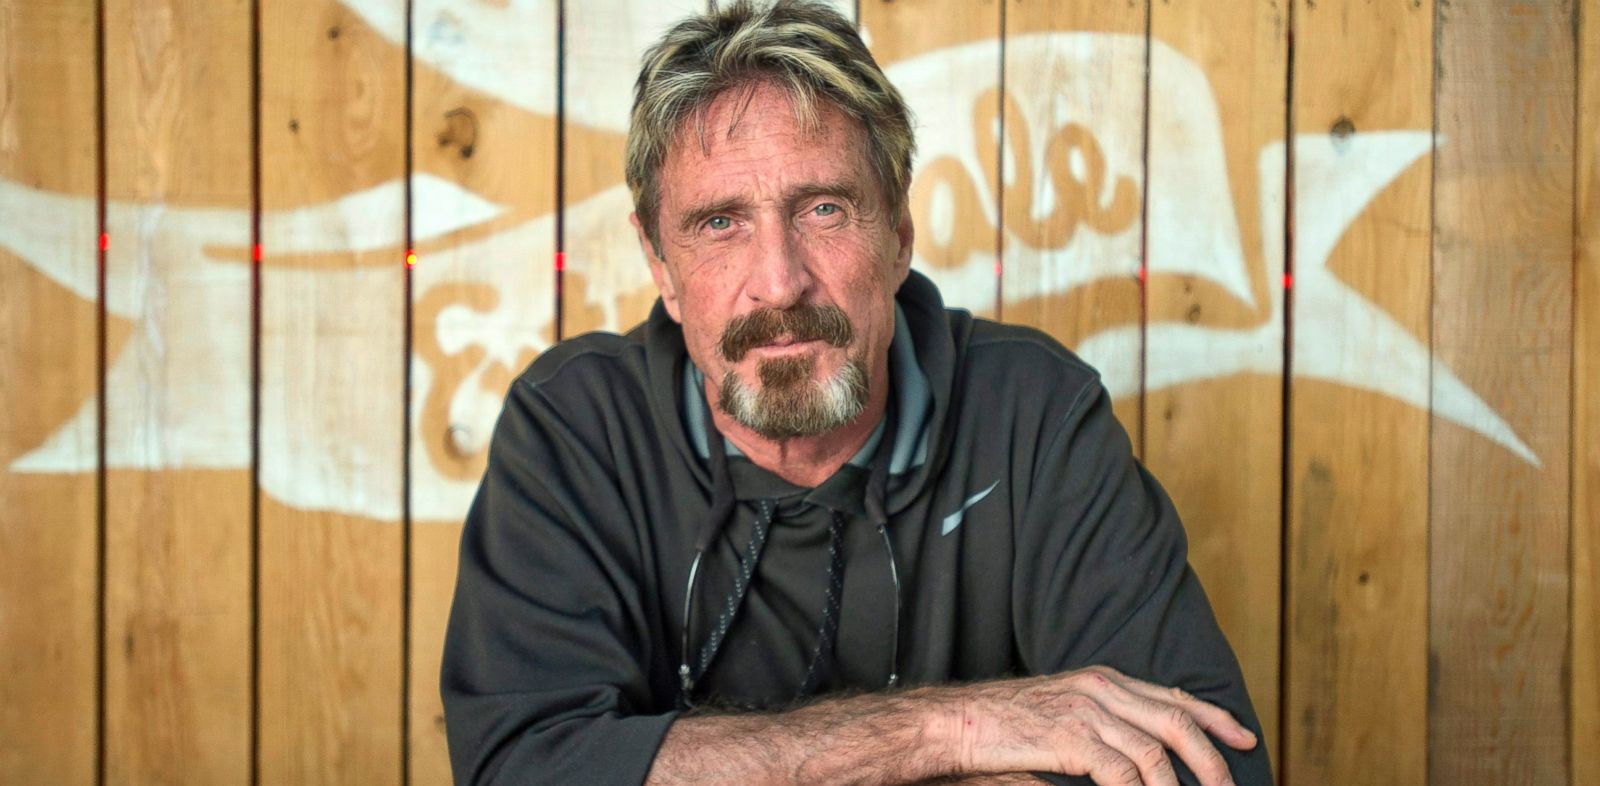 PHOTO: Antivirus pioneer John McAfee poses for a photograph in Montreal, Aug. 24, 2013.